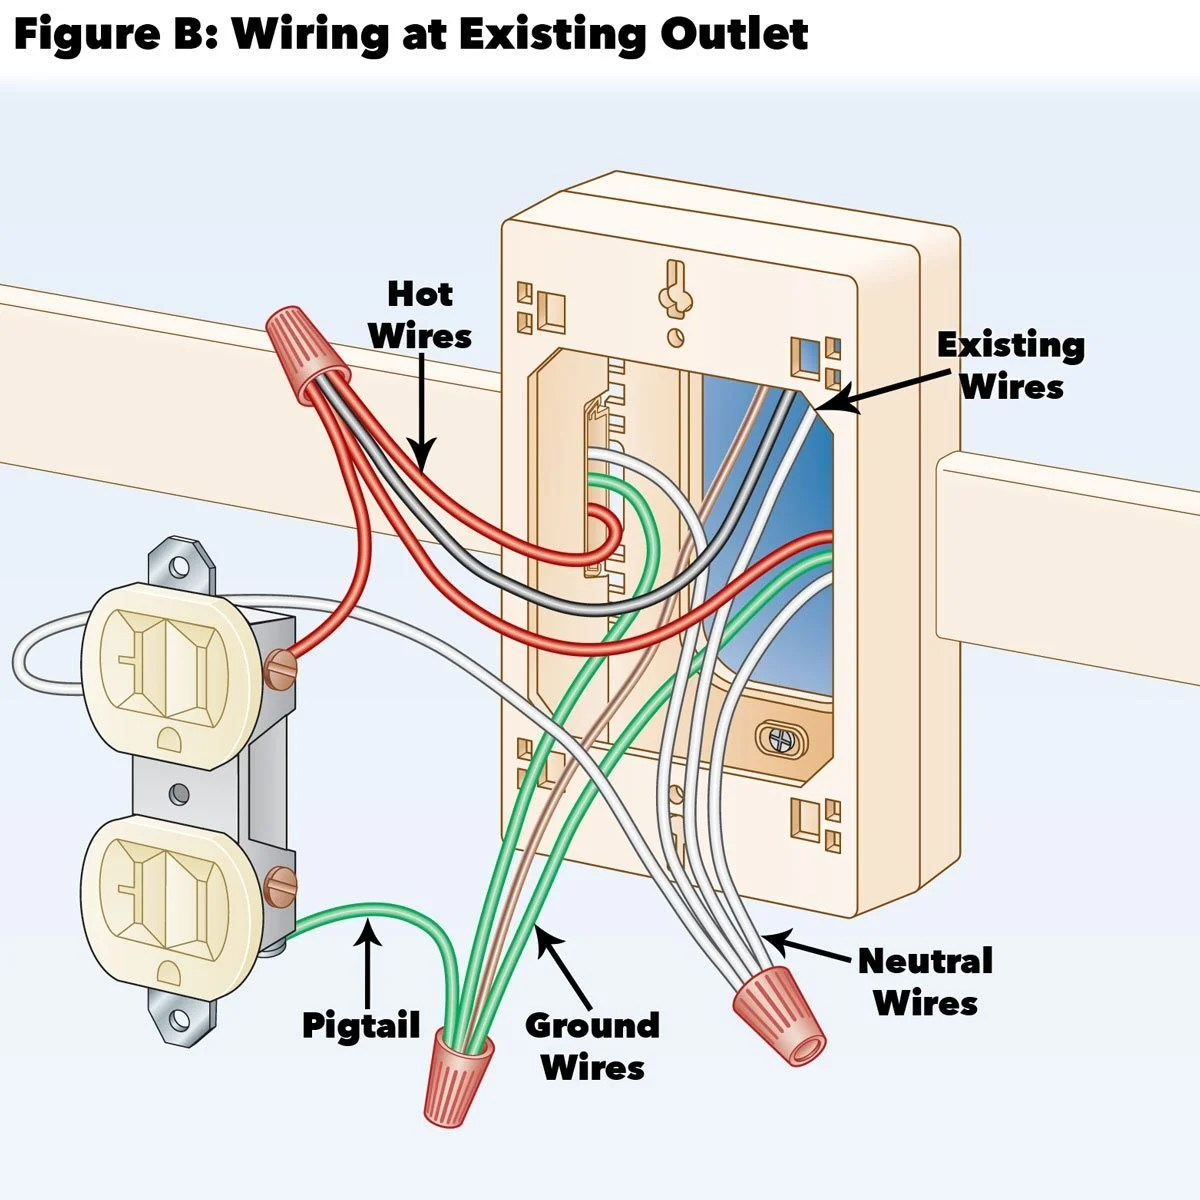 hight resolution of figure b wiring at existing outlet